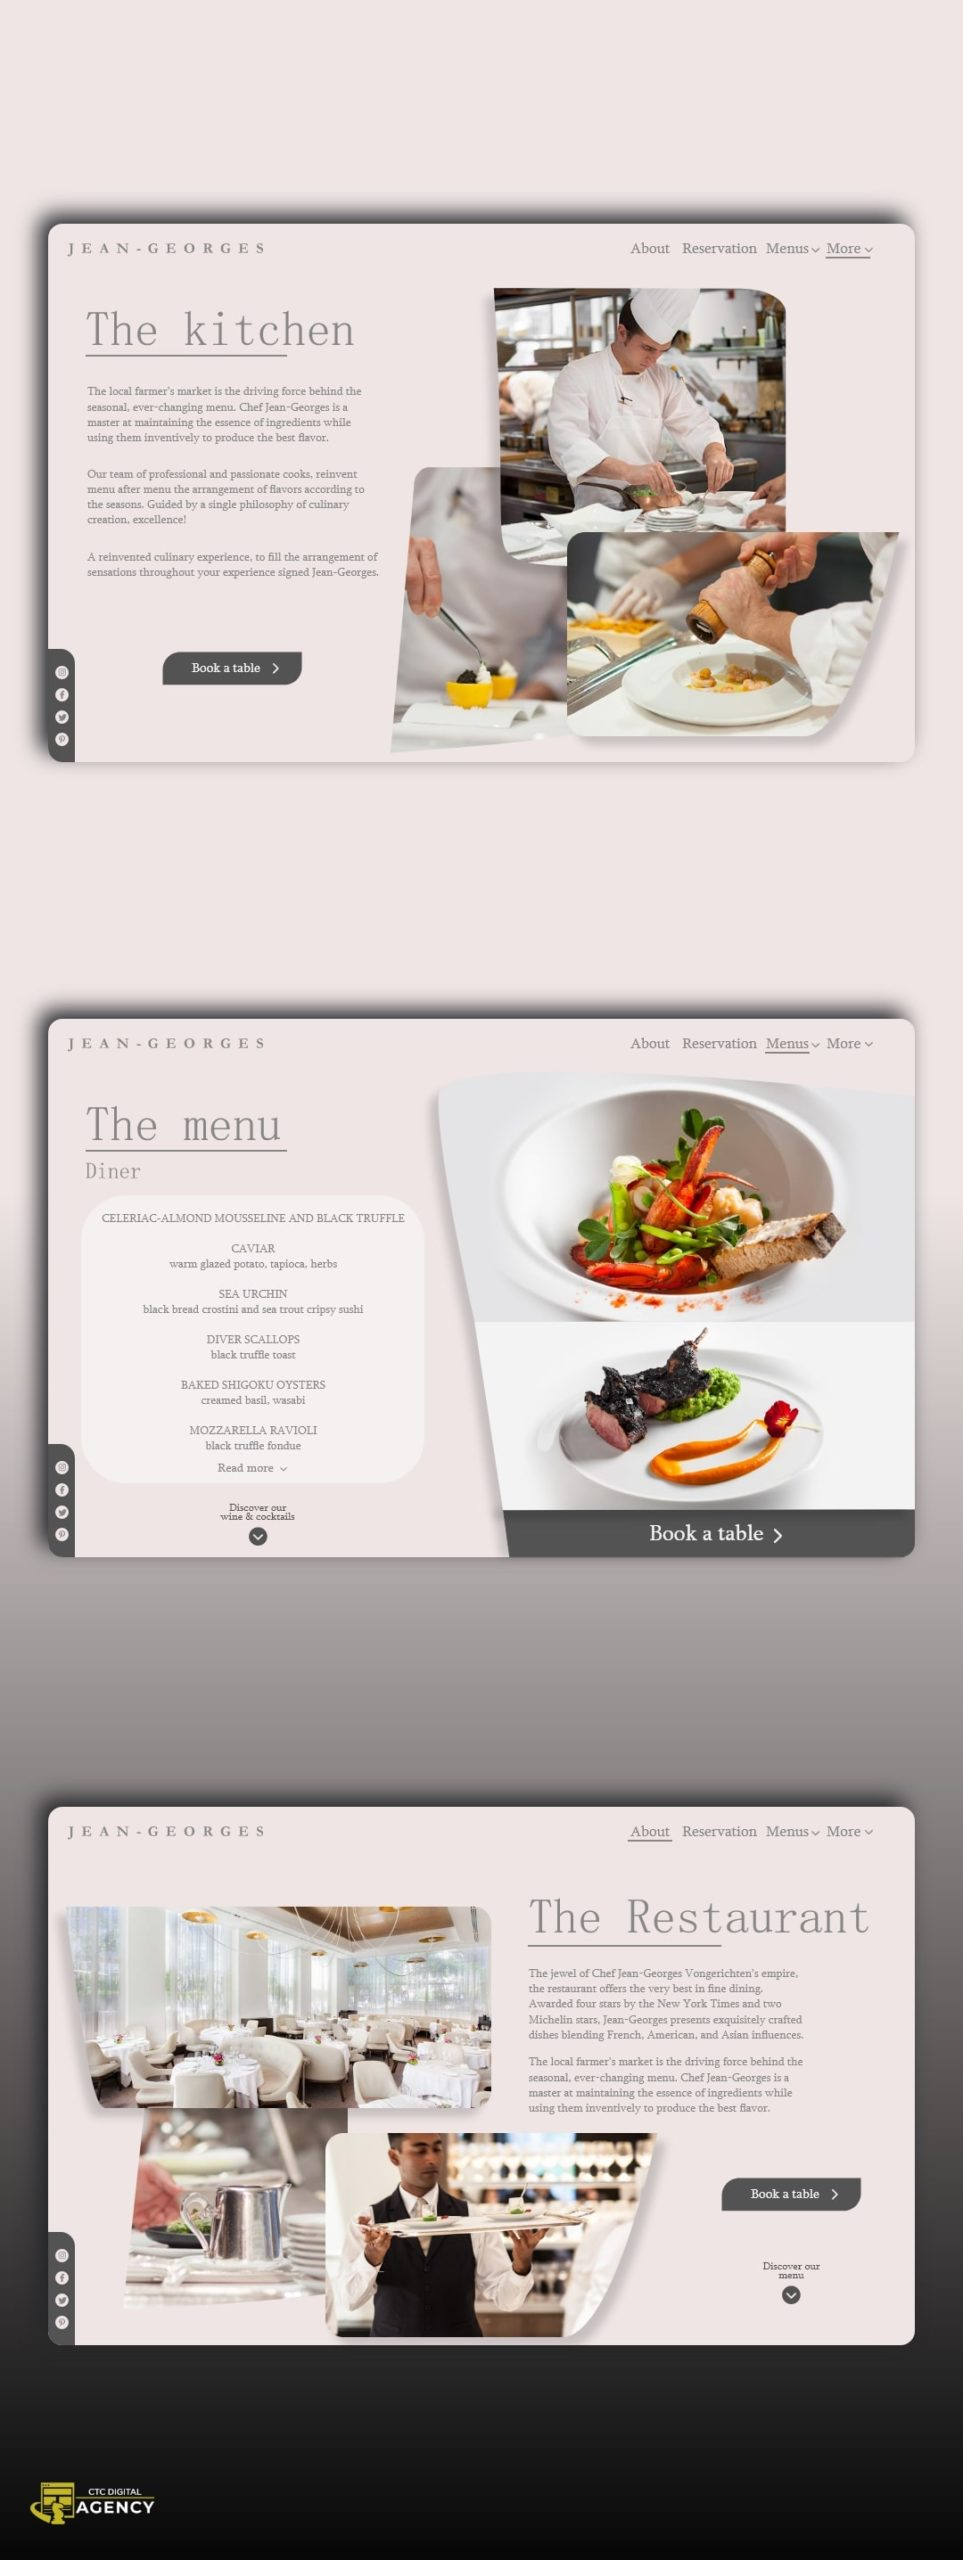 Restaurant Jean-Georges by CTC Digital Agency